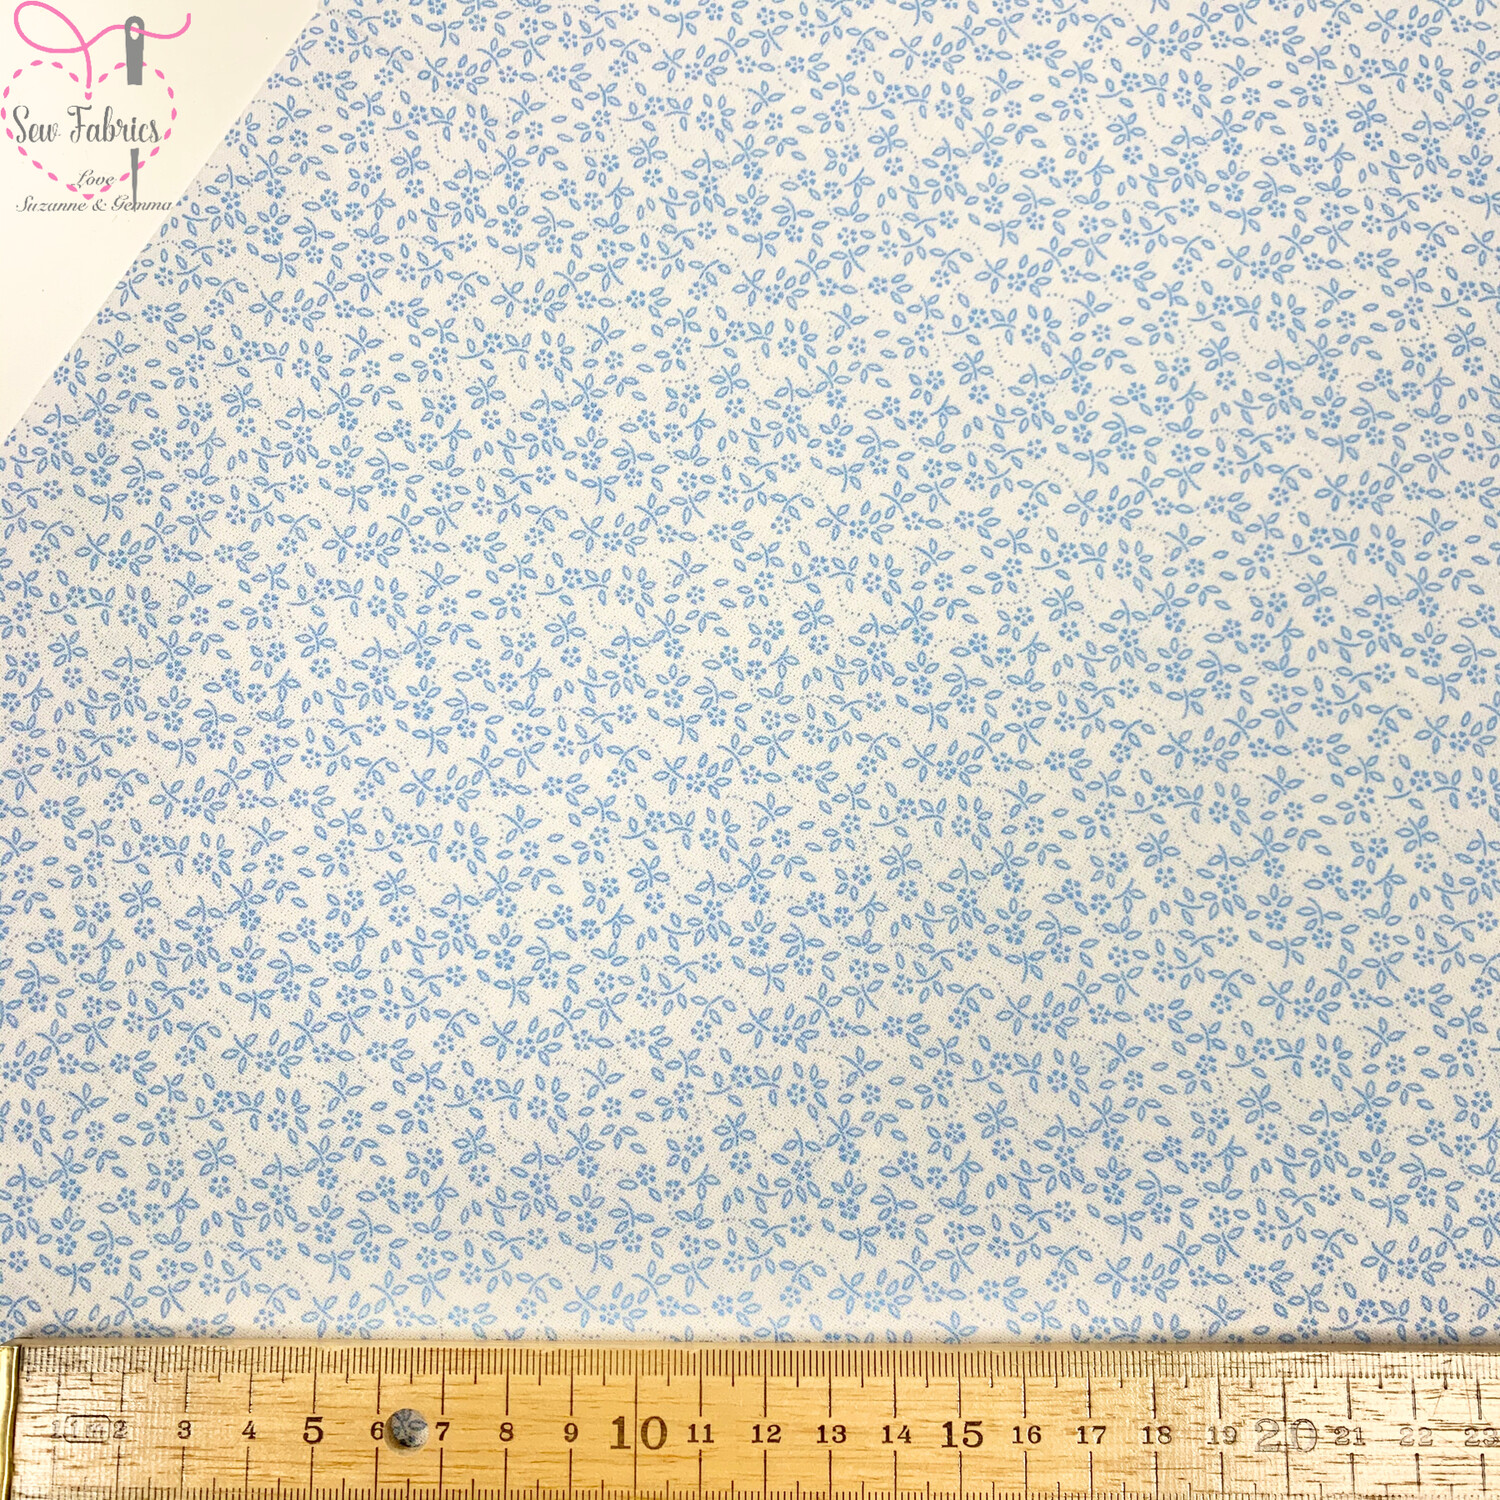 Sky Blue on Ivory Background100% Cotton Ditsy Daisy Fabric